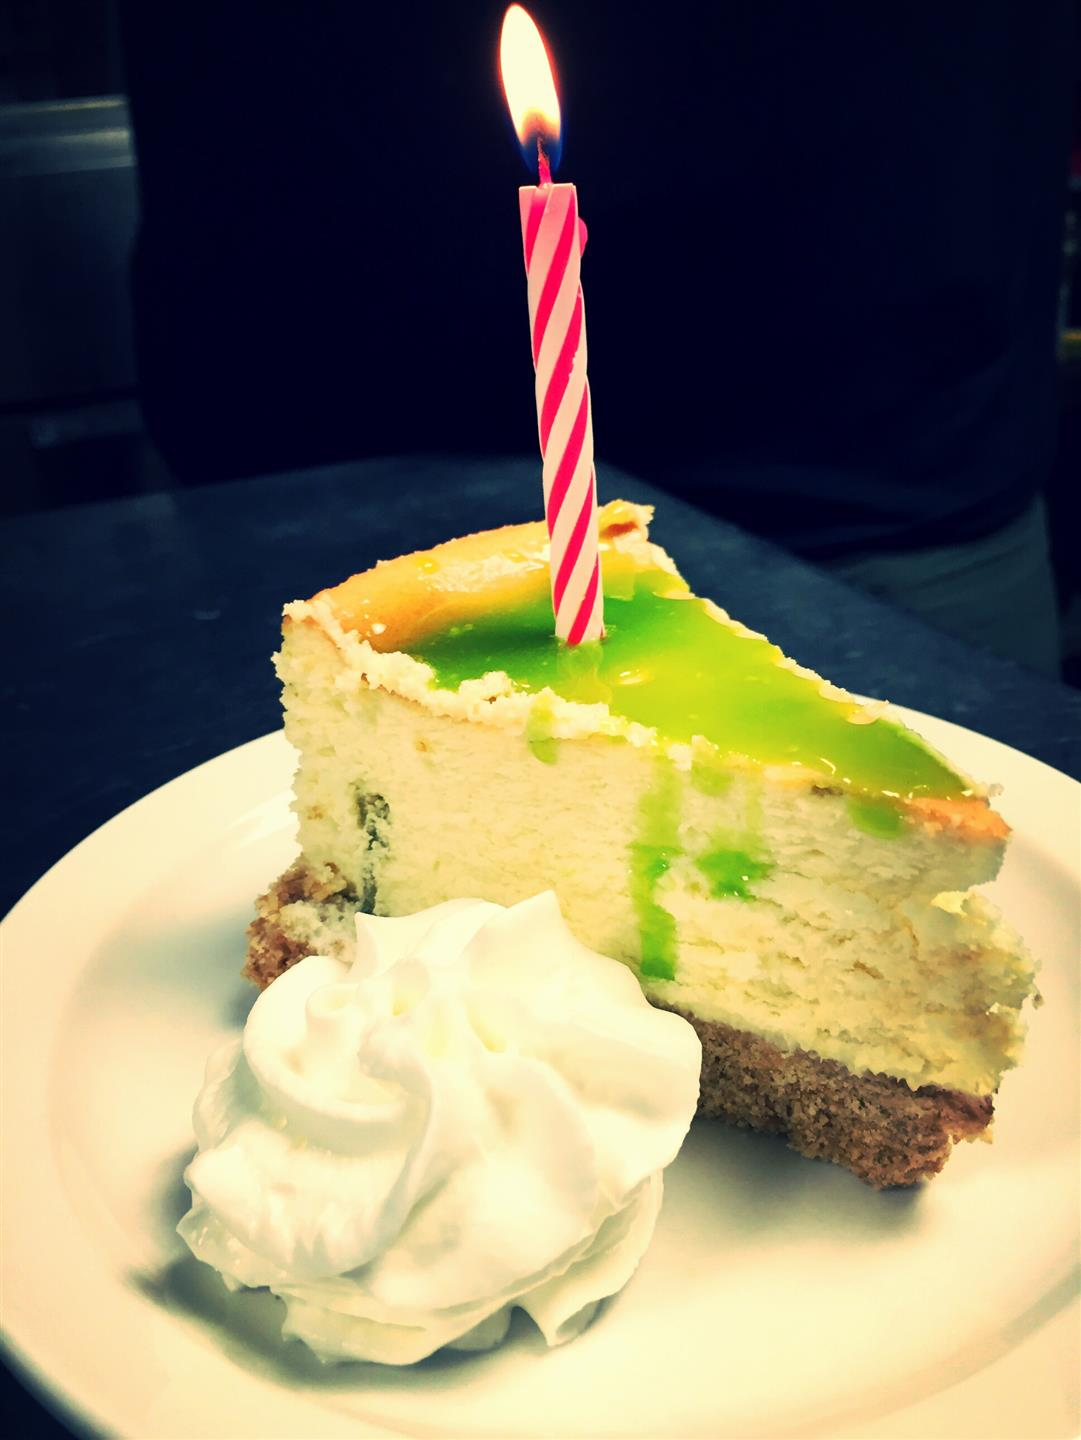 slice of cheesecake with a candle